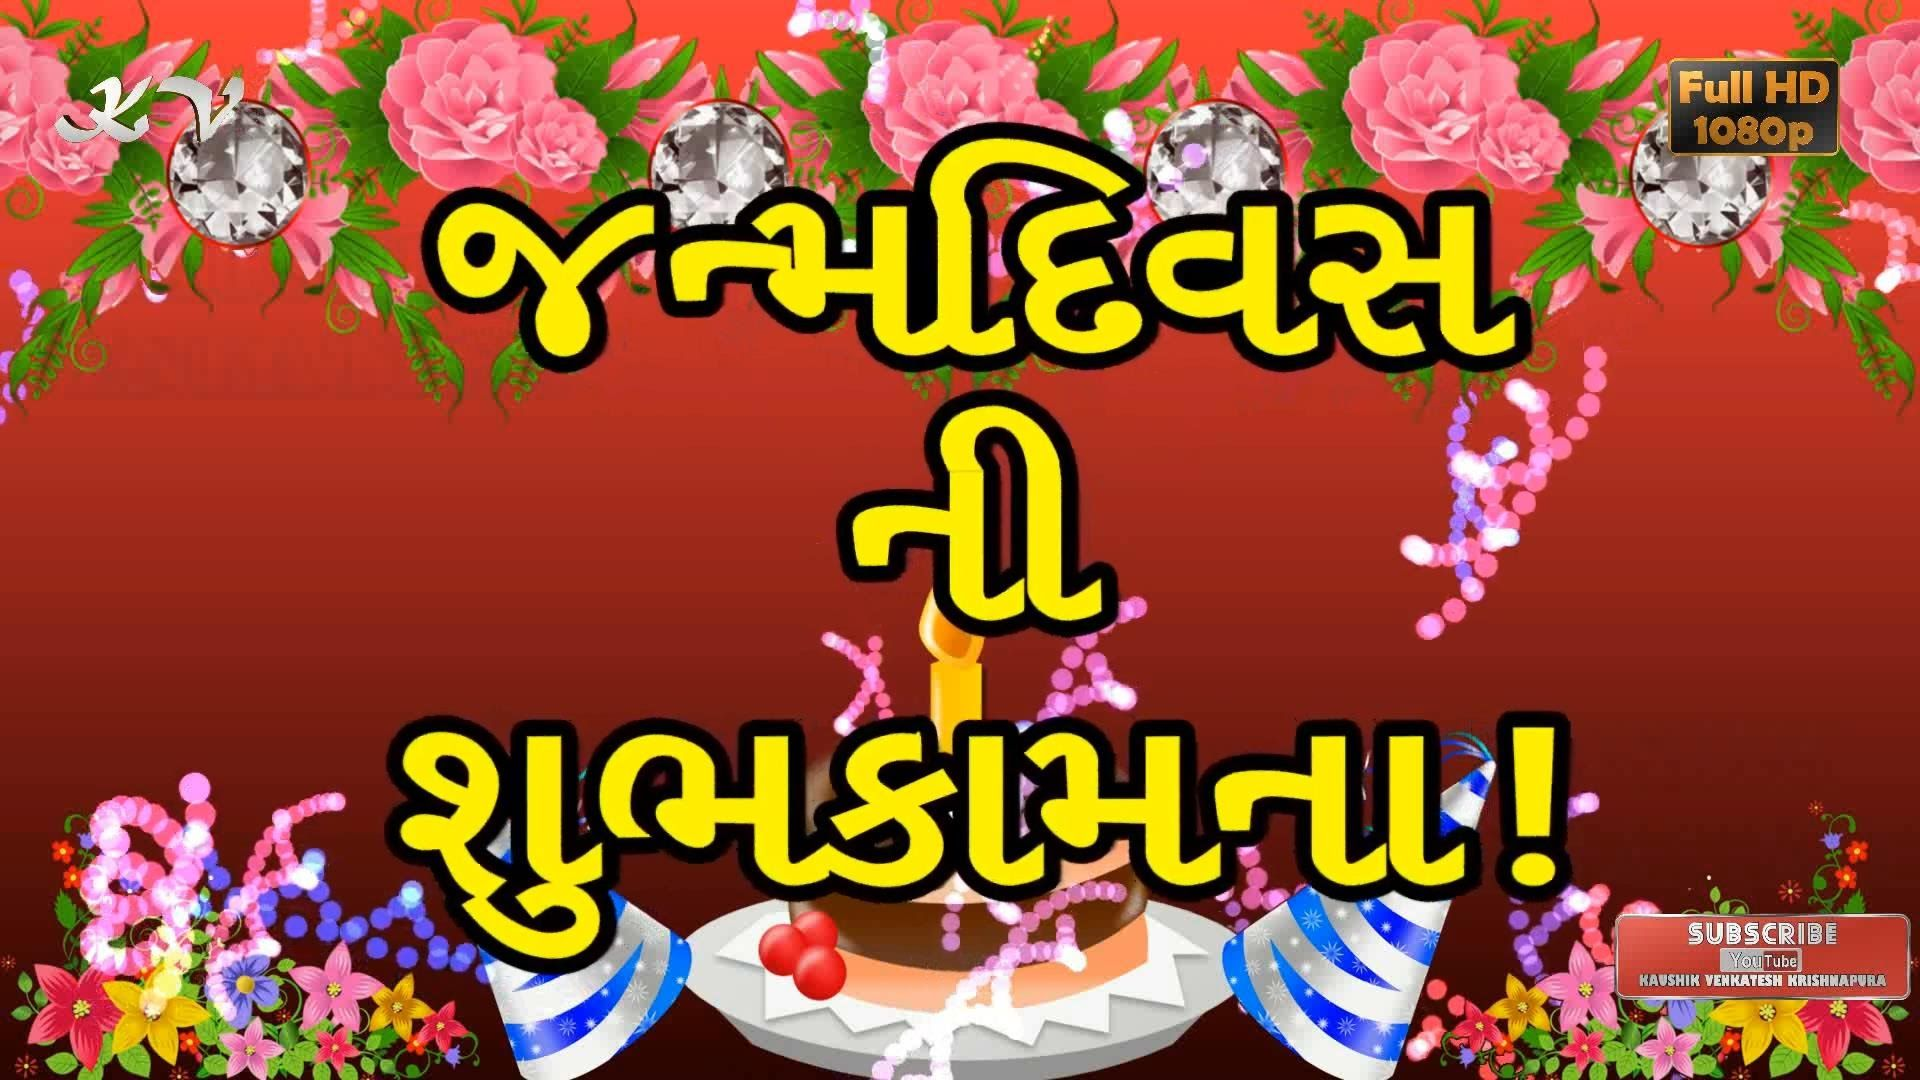 Gujarati Birthday Wishes, Happy Birthday Greetings In